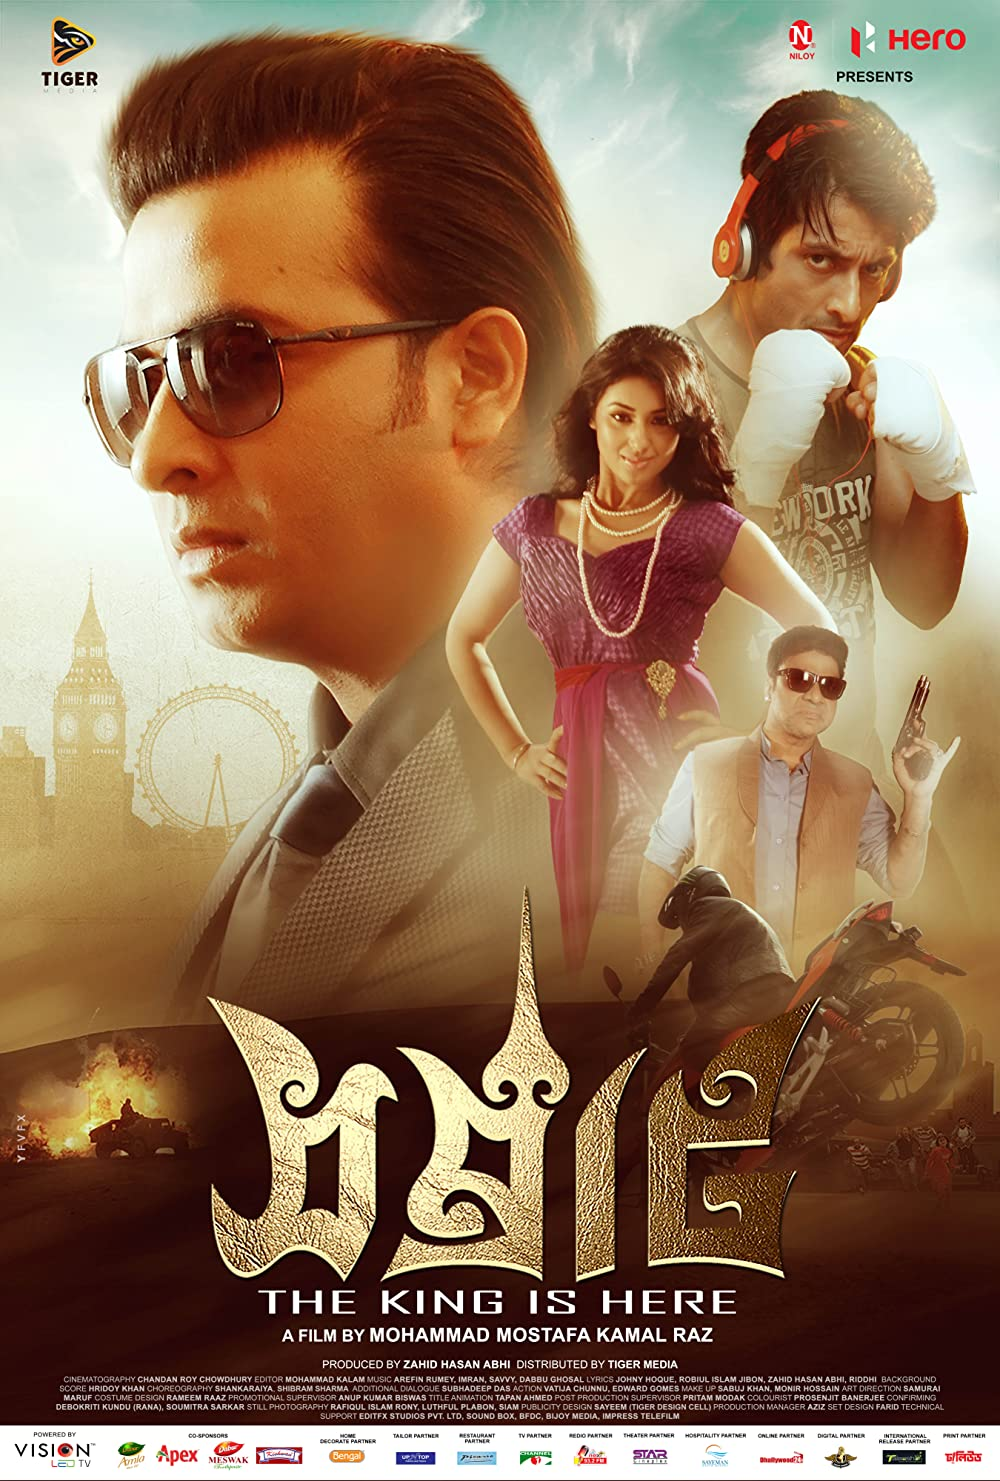 Samraat: The King Is Here (2016) Bangla 720p HDRip x264 AAC  (900MB) Full Movie Download